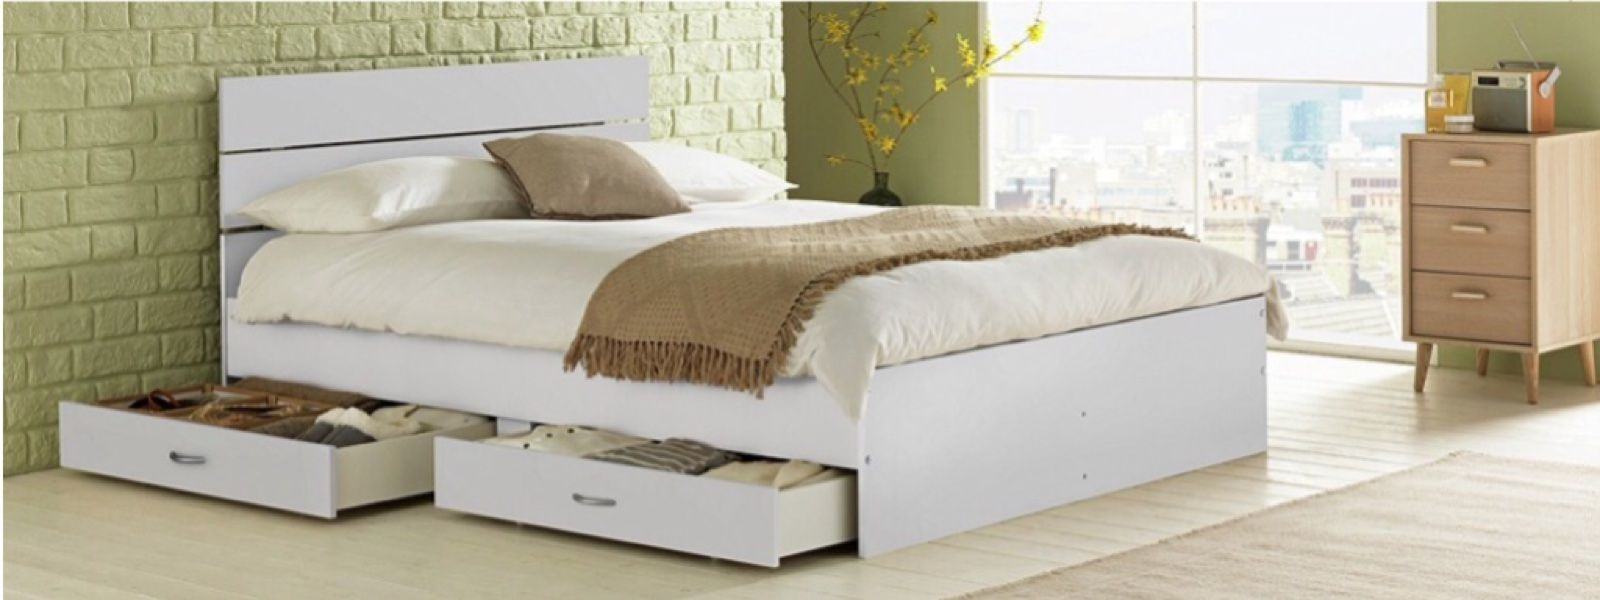 Bed with 4 drawers